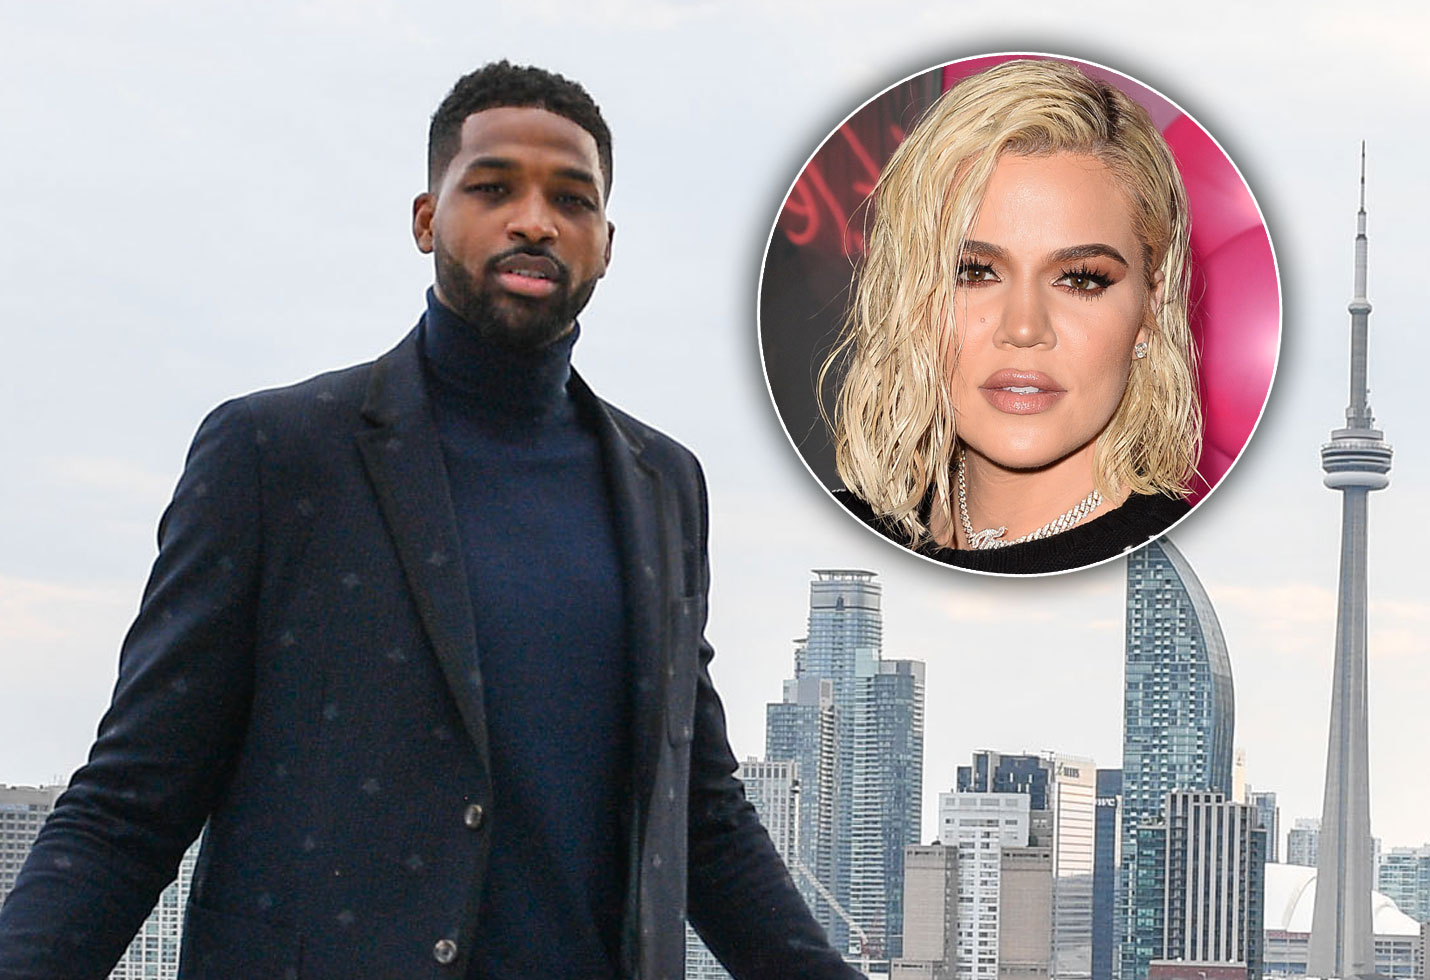 Tristan thompson instagram khloe kardashian cheating scandal true birthday